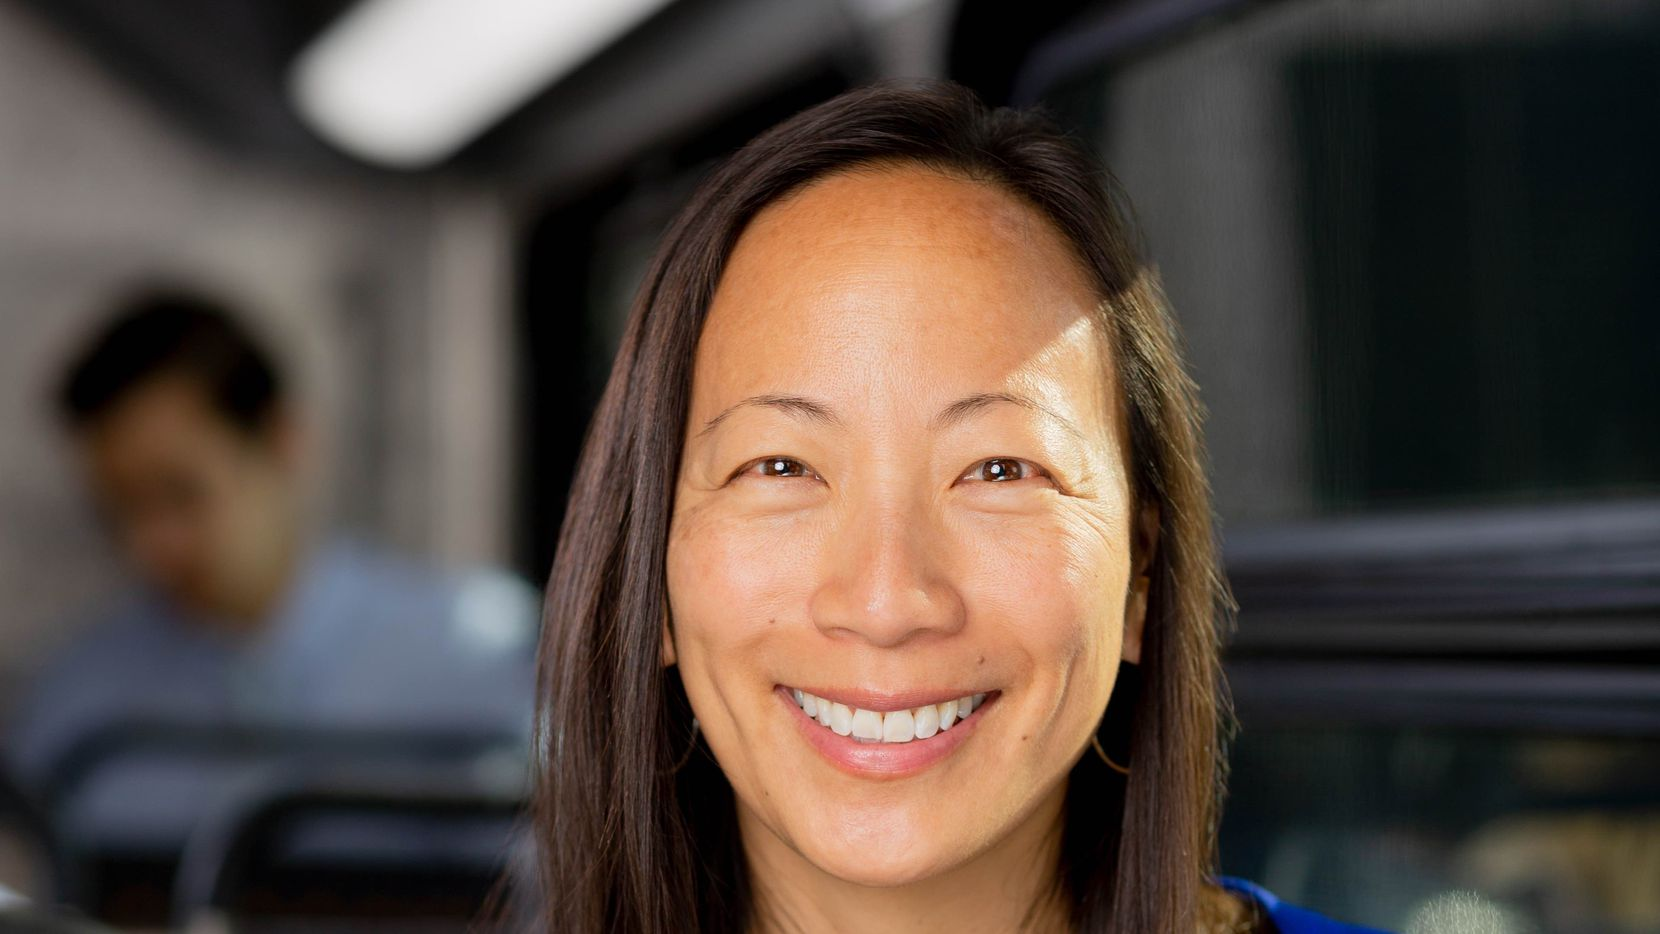 Nadine Lee has been selected as Dallas Area Rapid Transit's new president and chief executive officer.